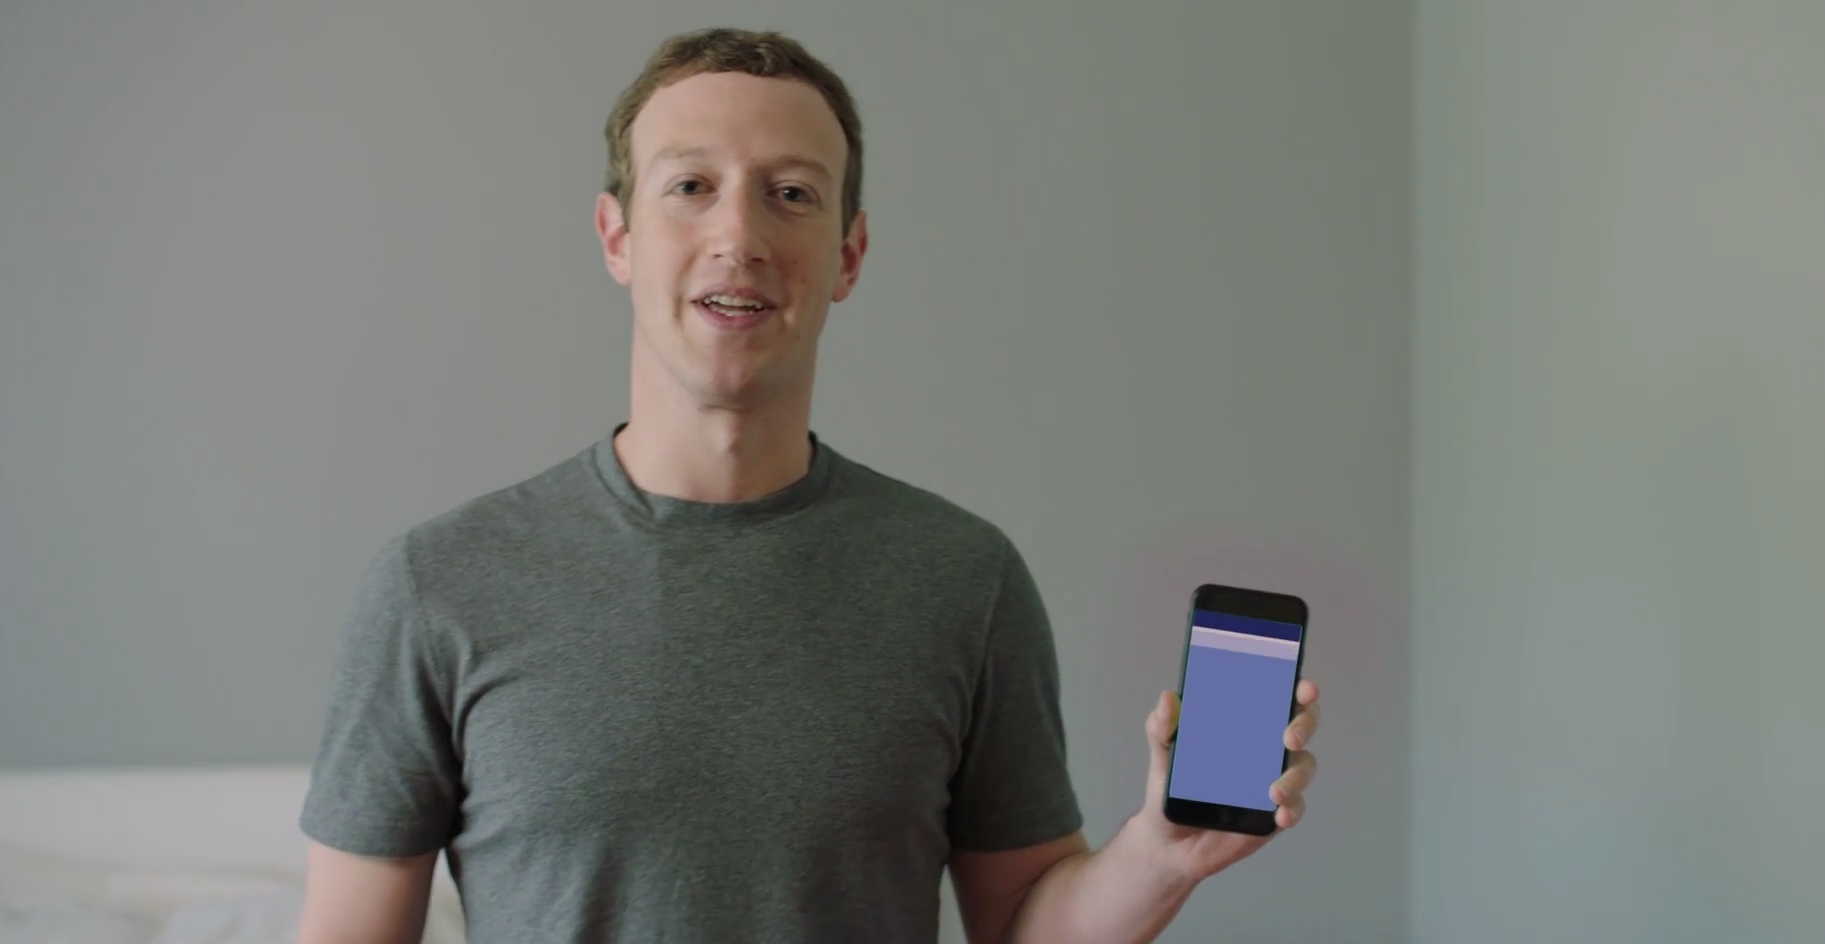 morgan freeman is the voice of jarvis, mark zuckerberg's homemade